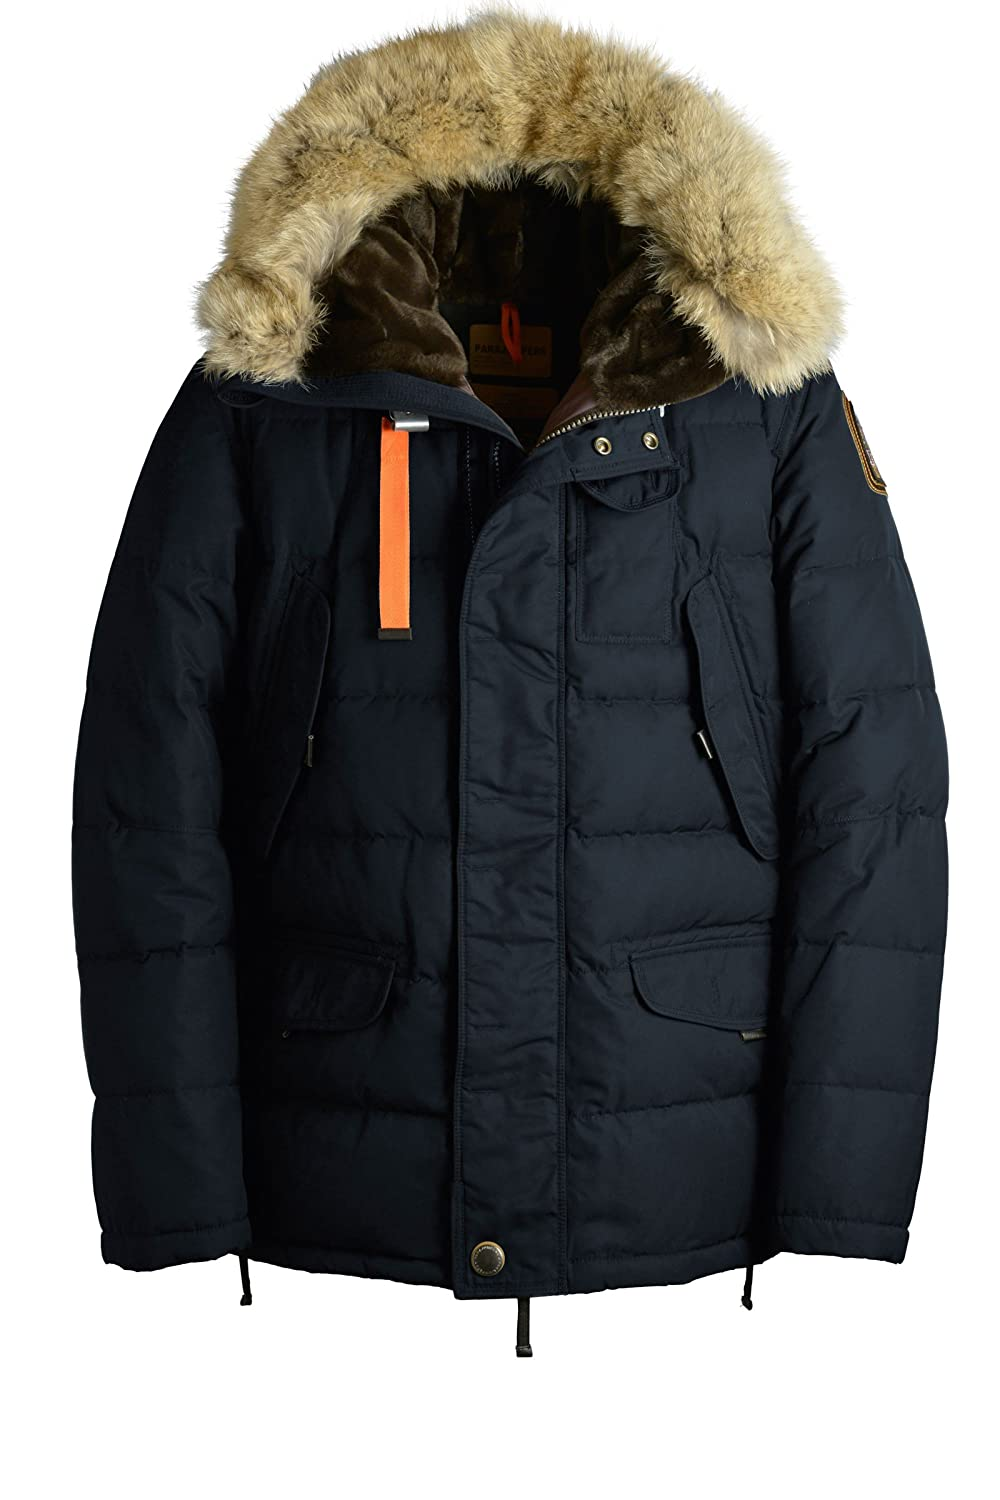 parajumpers made in